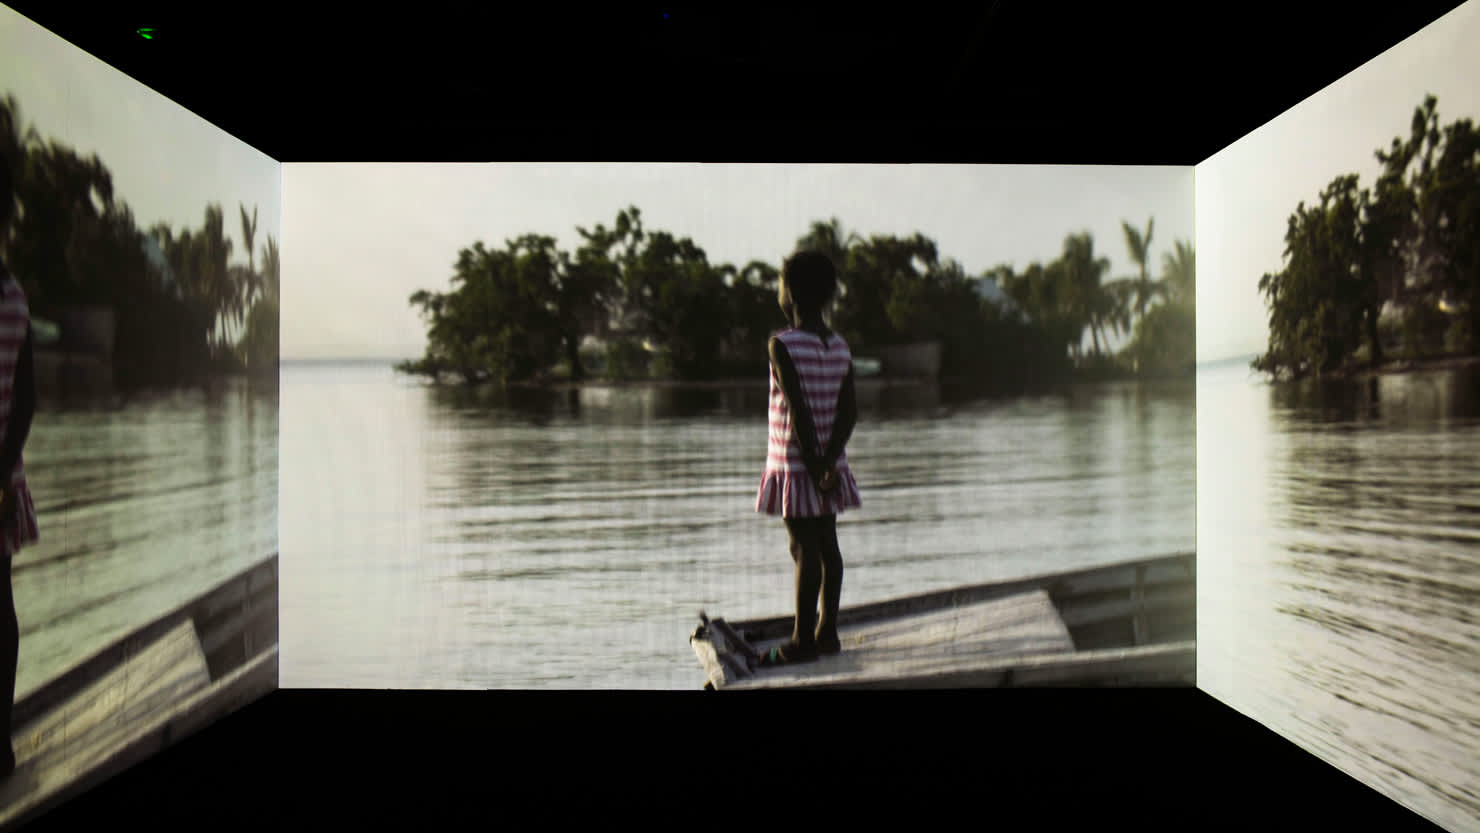 A still from 'Narrenschiff', 2017 by Kehinde Wiley